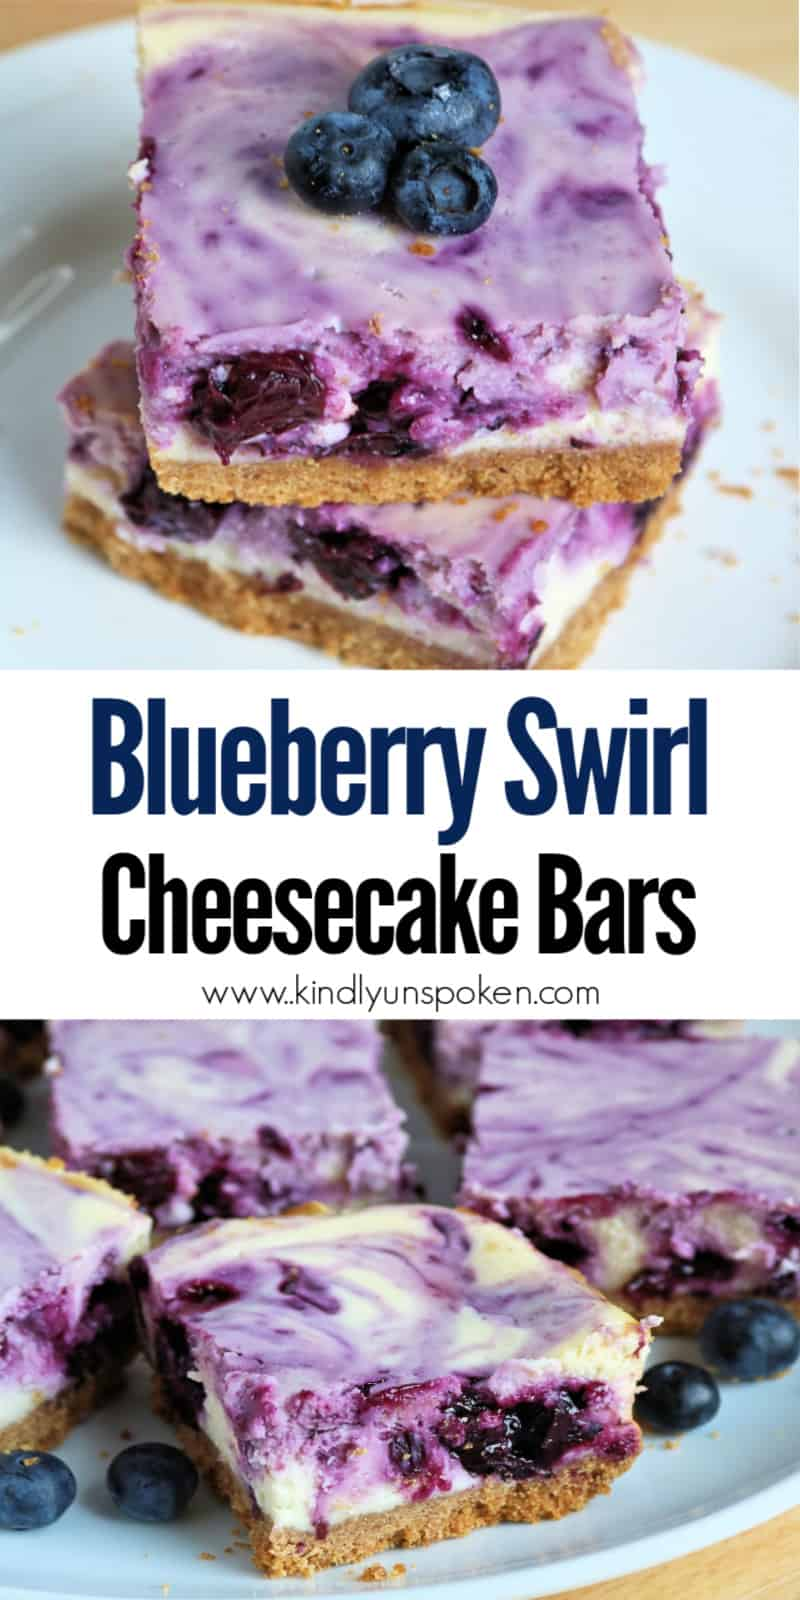 These easy and delicious Blueberry Swirl Cheesecake Bars are the best blueberry cheesecake bars you'll ever eat! Creamy vanilla and lemon cheesecake bars made with cream cheeses are swirled with a fresh blueberry lemon sauce and a buttery graham cracker crust. #blueberrycheesecakebars #blueberrycheesecake #blueberrybars #cheesecakebars #dessertbars  #blueberrydessert